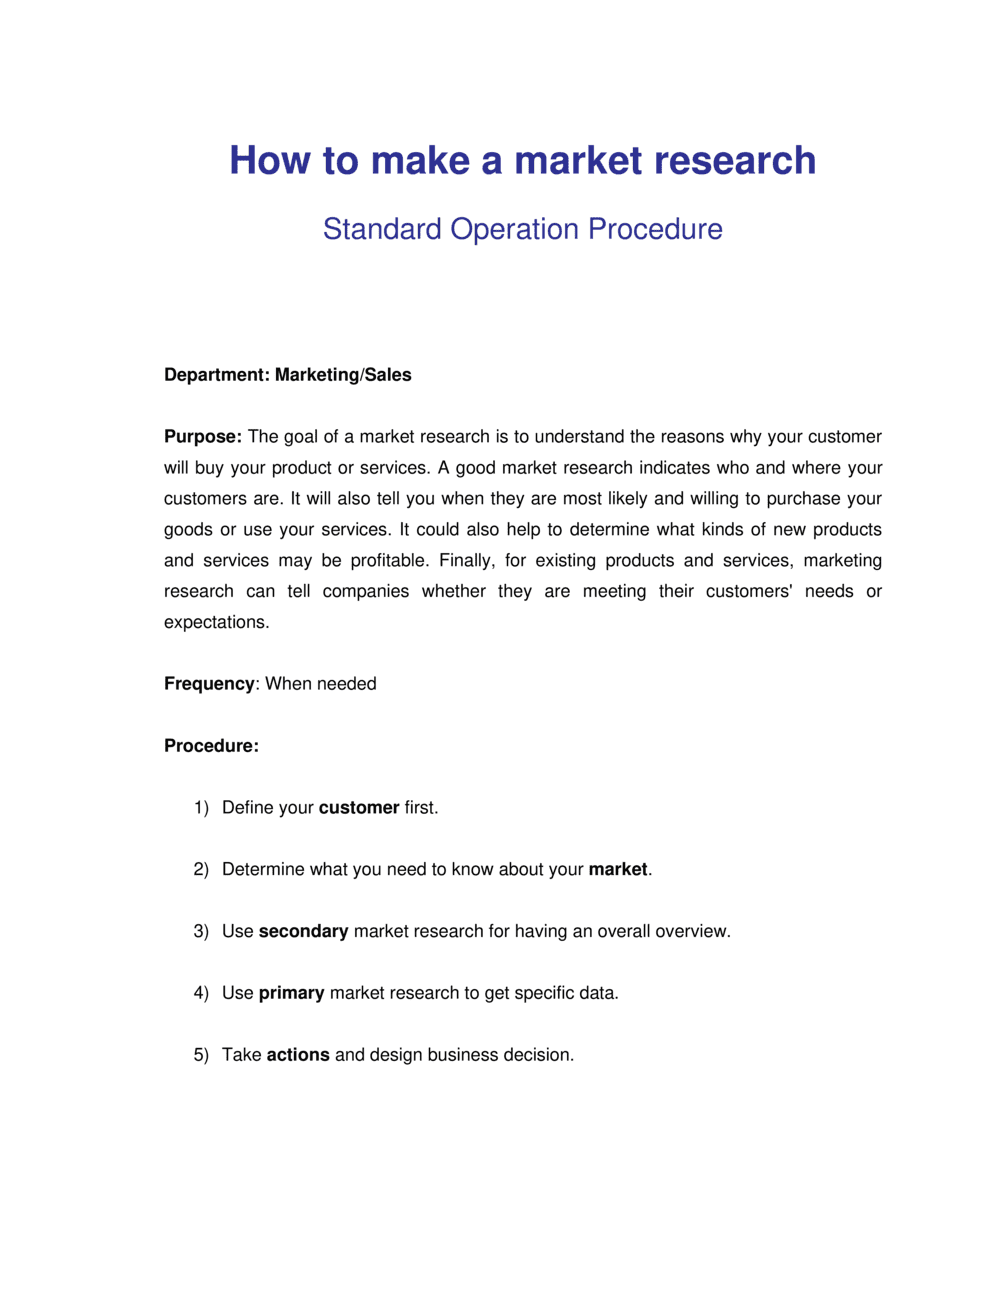 Business-in-a-Box's How to Make a Market Research